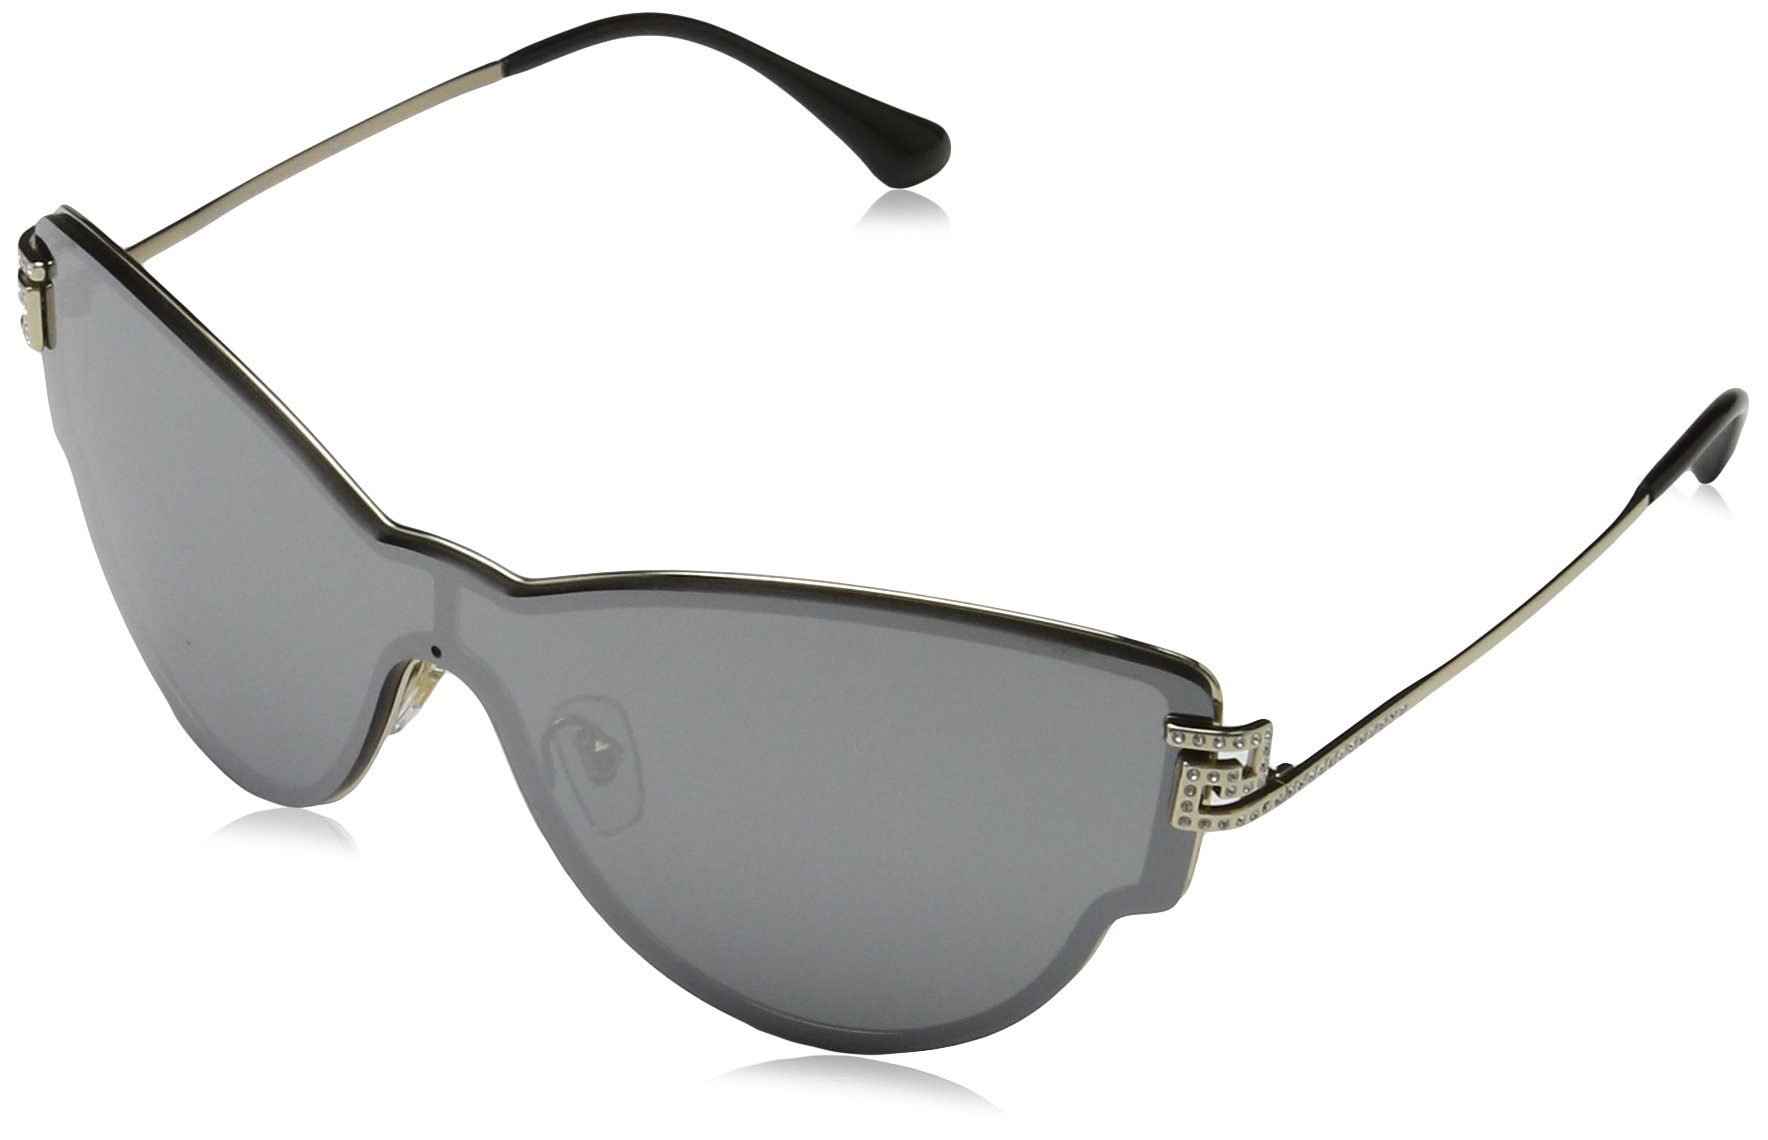 Versace Womens Sunglasses (VE2172) Gold/Silver Metal - Non-Polarized - 42mm